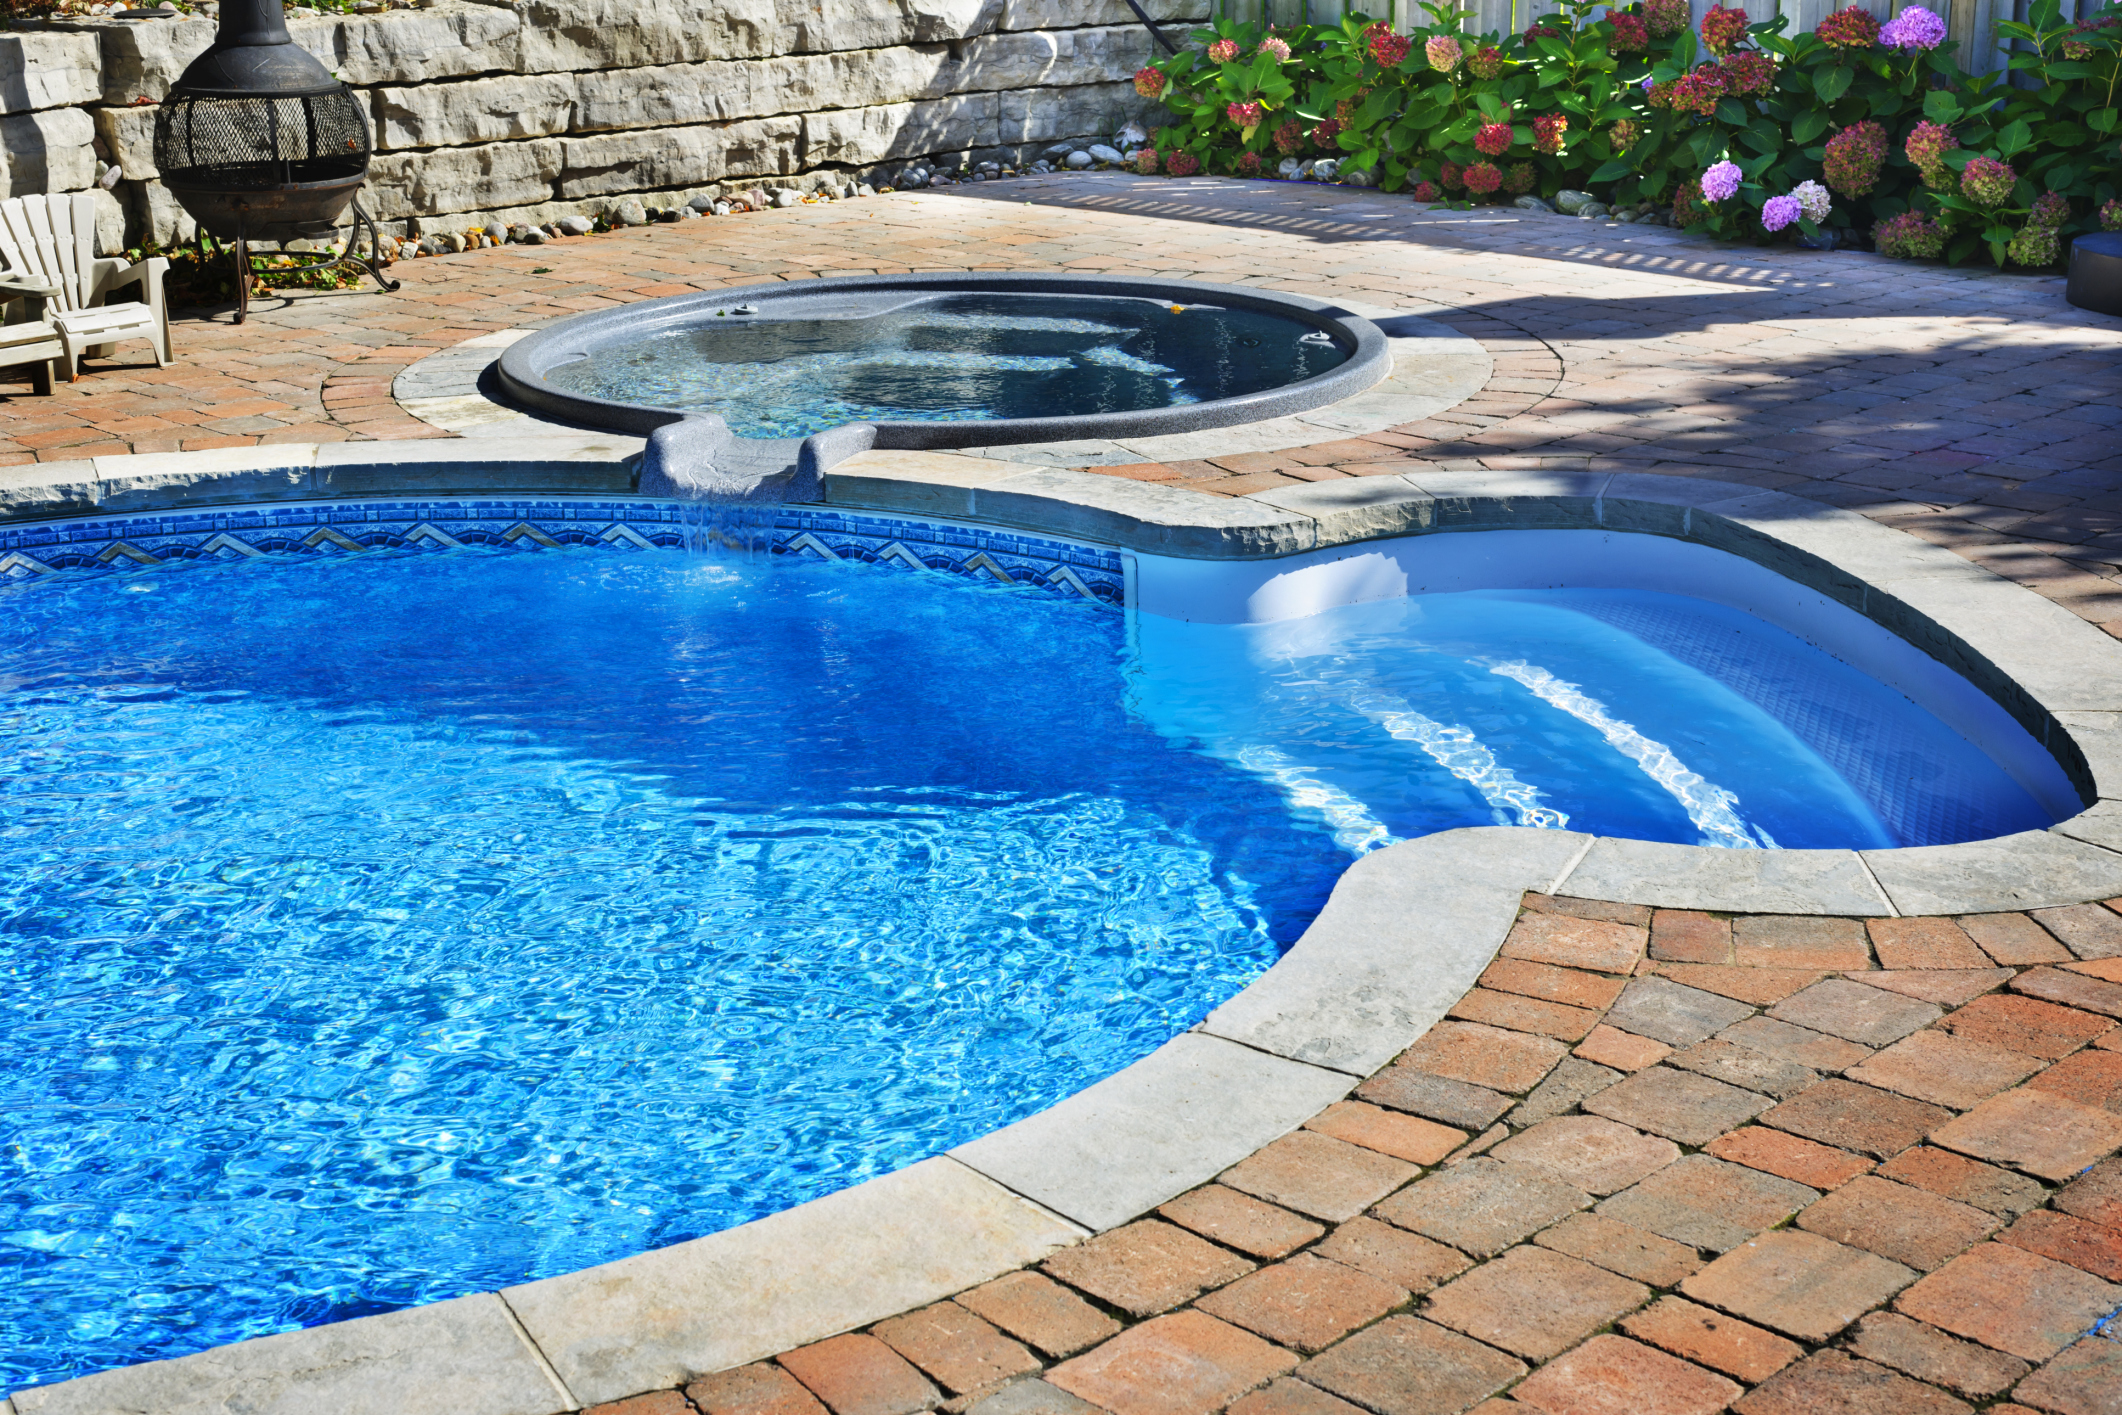 Pool Shape which popular pool shape is right for your yard?